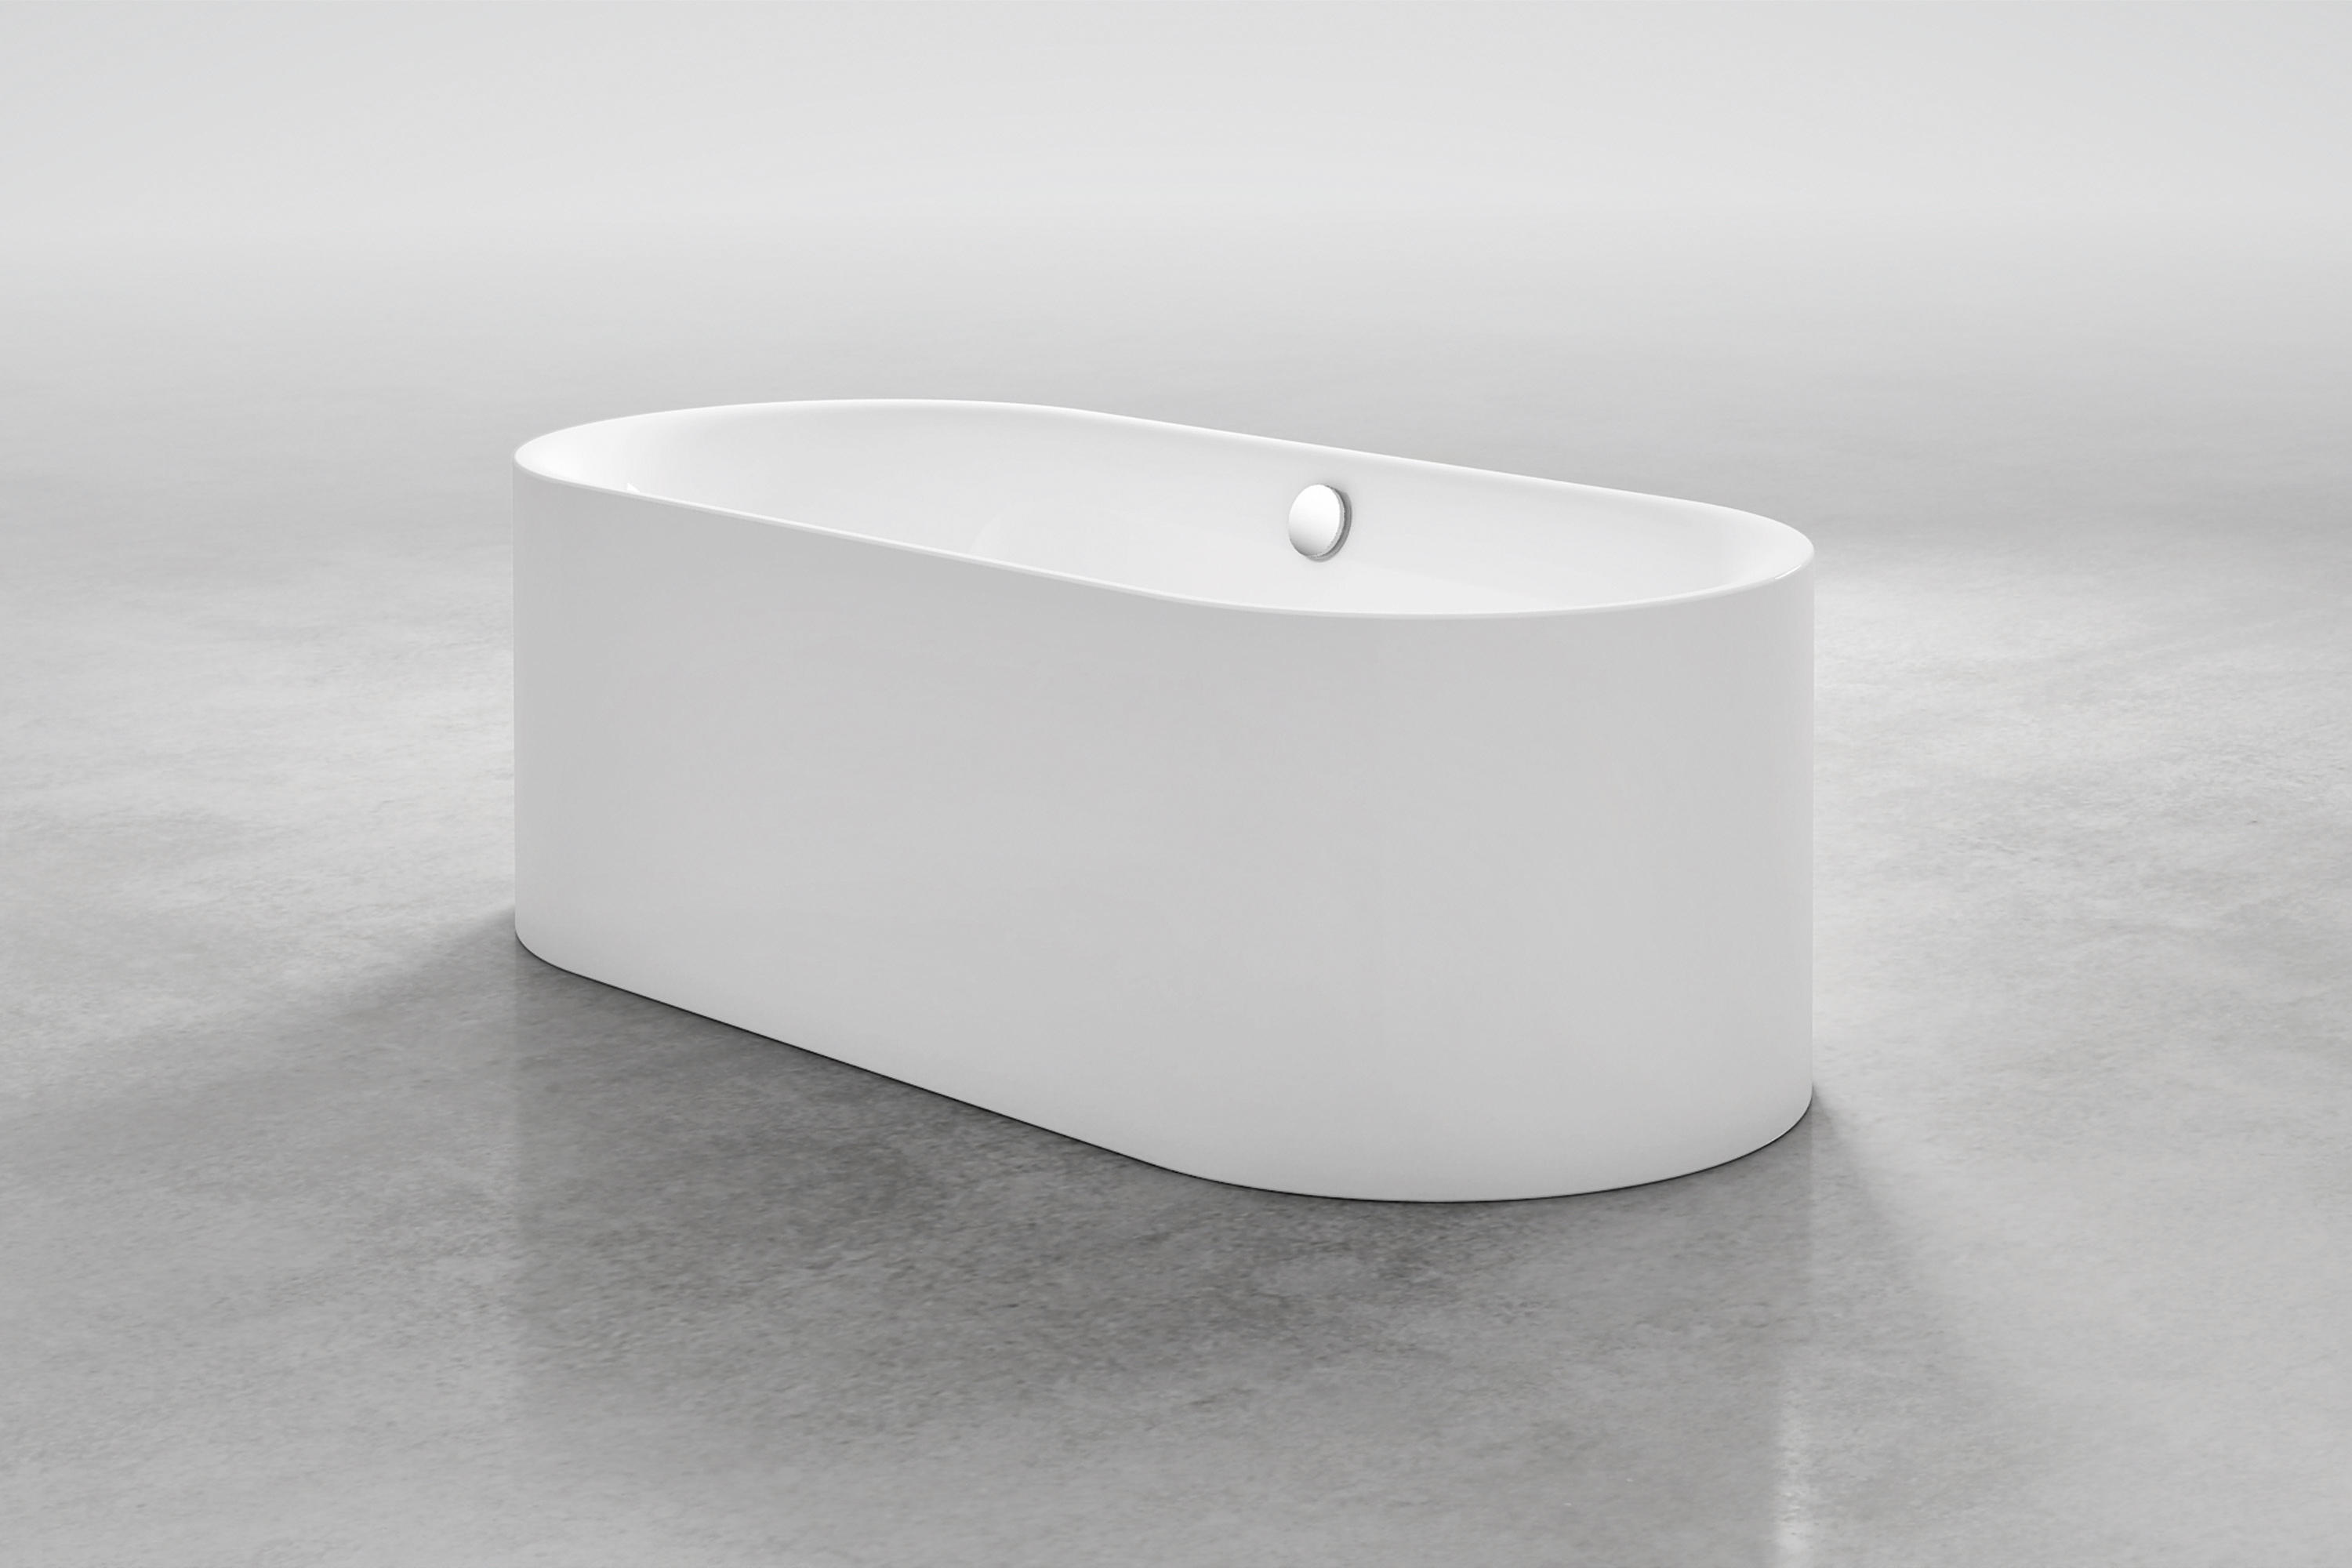 bettelux oval bath built in bathtubs from bette architonic. Black Bedroom Furniture Sets. Home Design Ideas